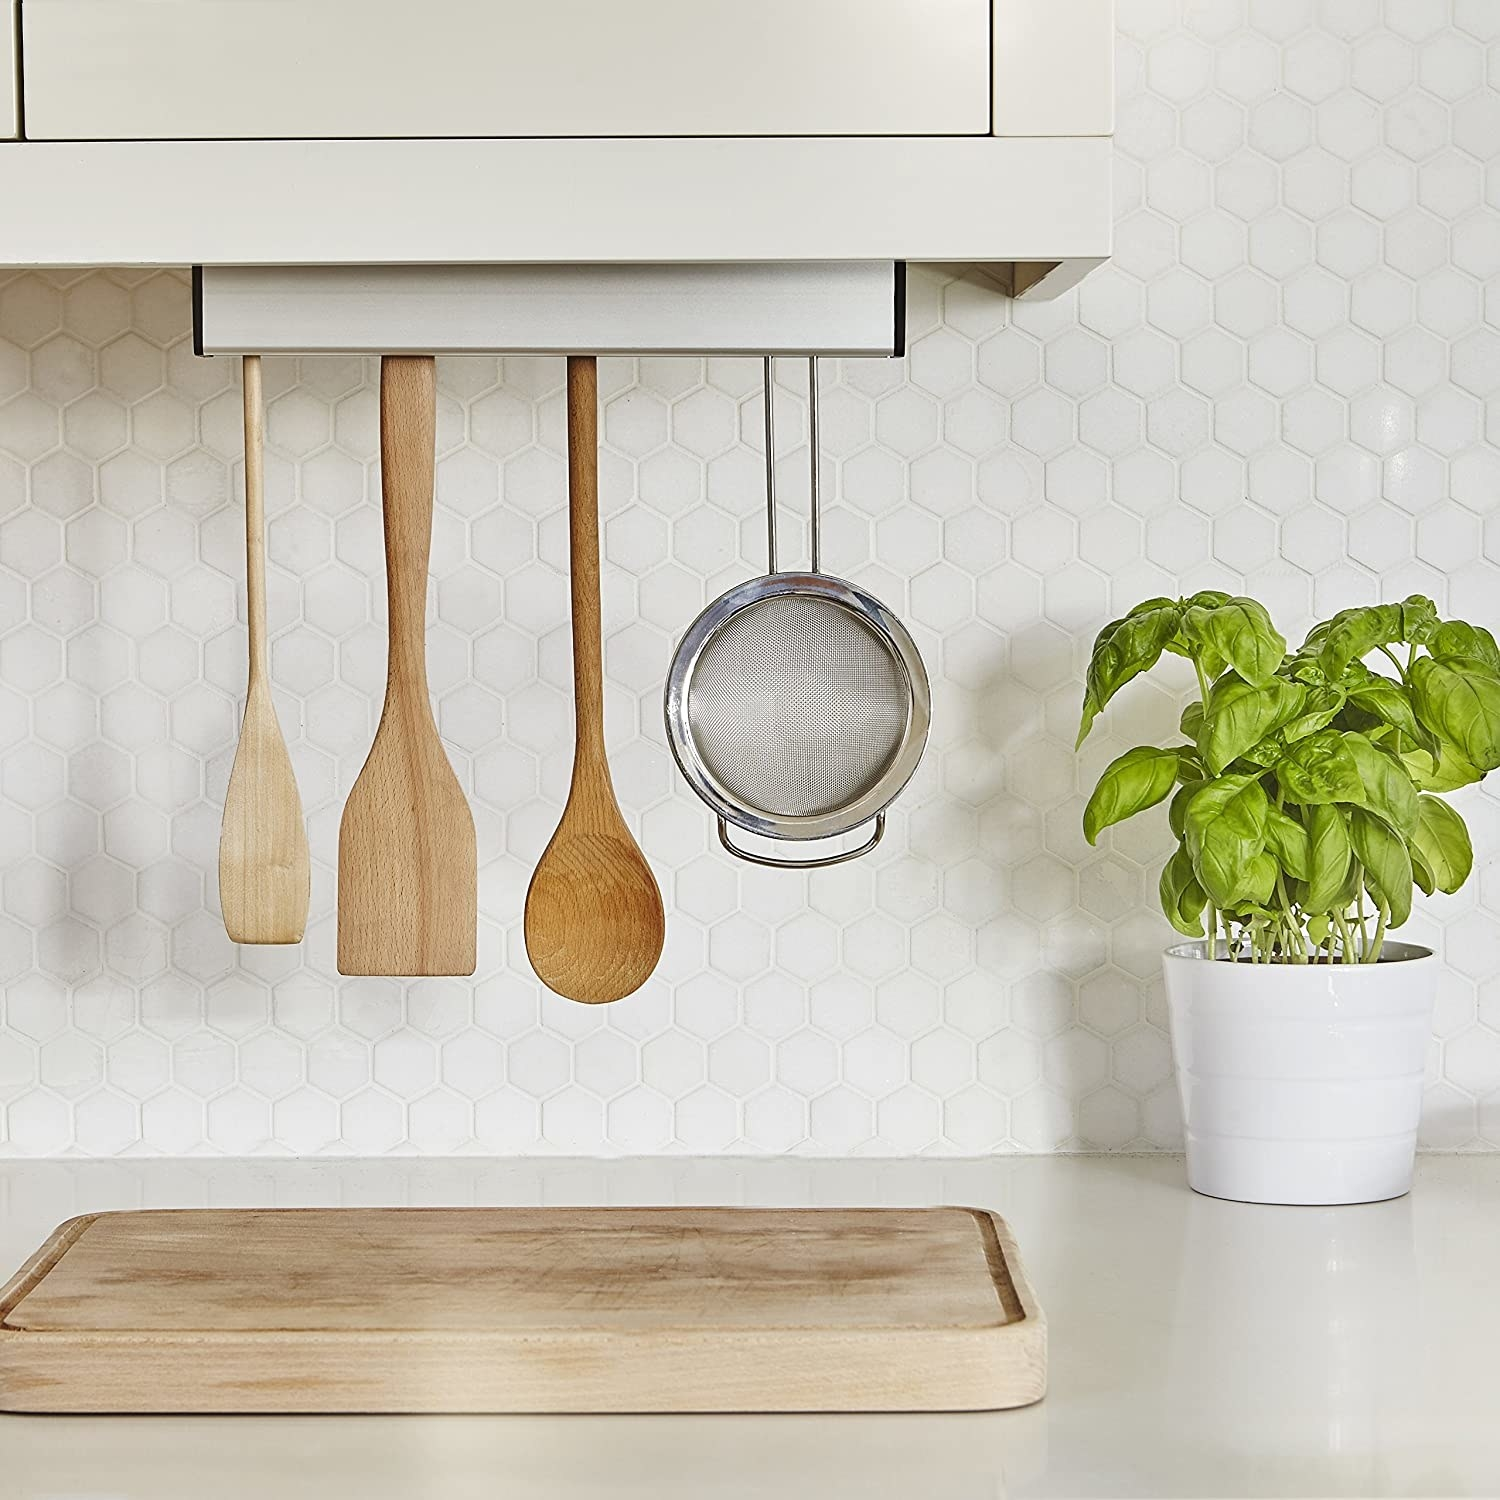 The utensil holder mounted under a cabinet and filled with wooden utensils and a stainless steel strainer